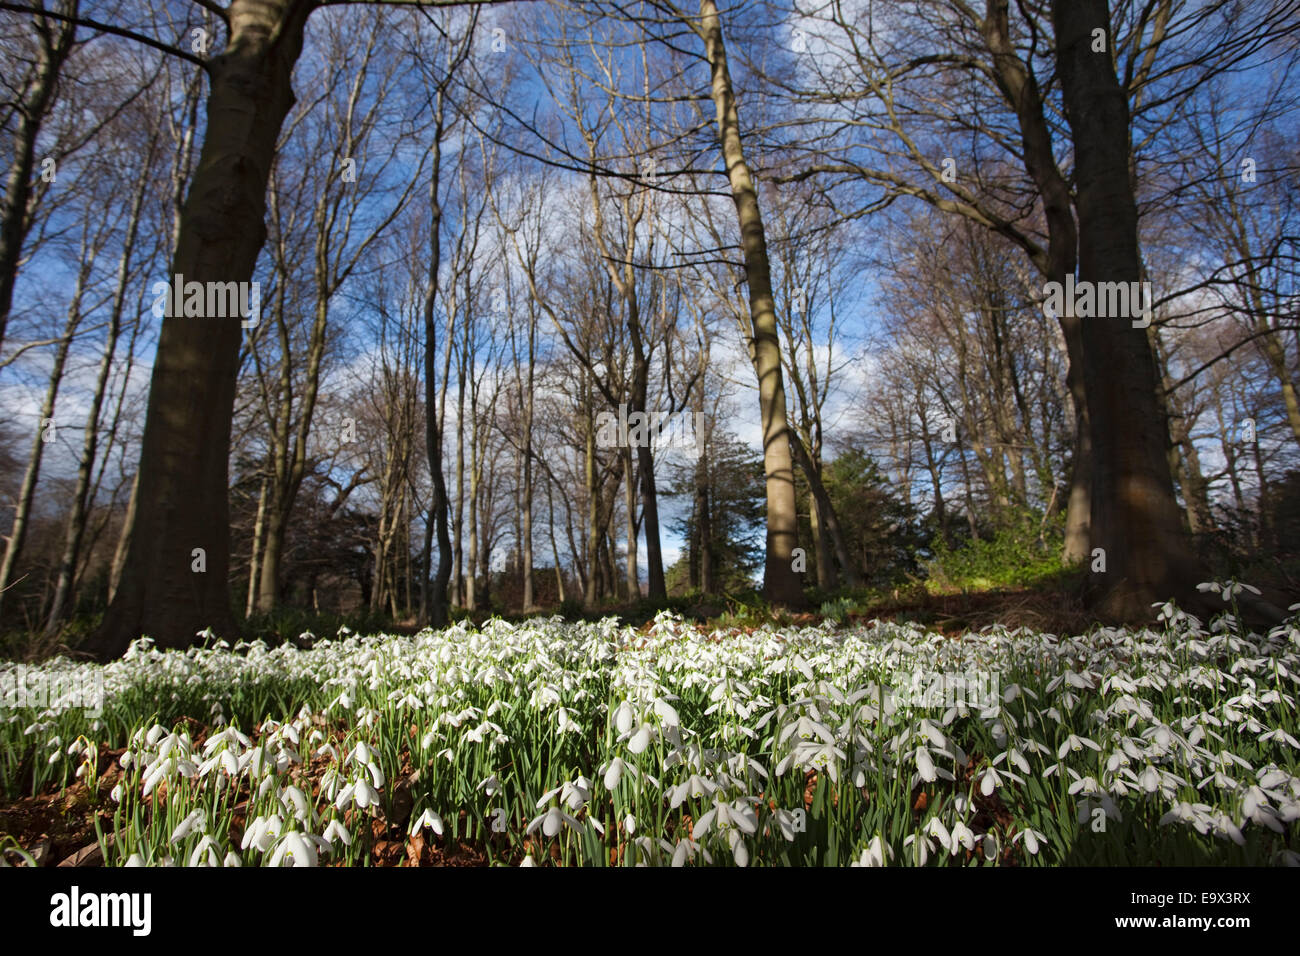 Snowdrops (Galanthus nivalis) in woodland, Howick Hall garden, Northumberland, UK, March 2009 - Stock Image